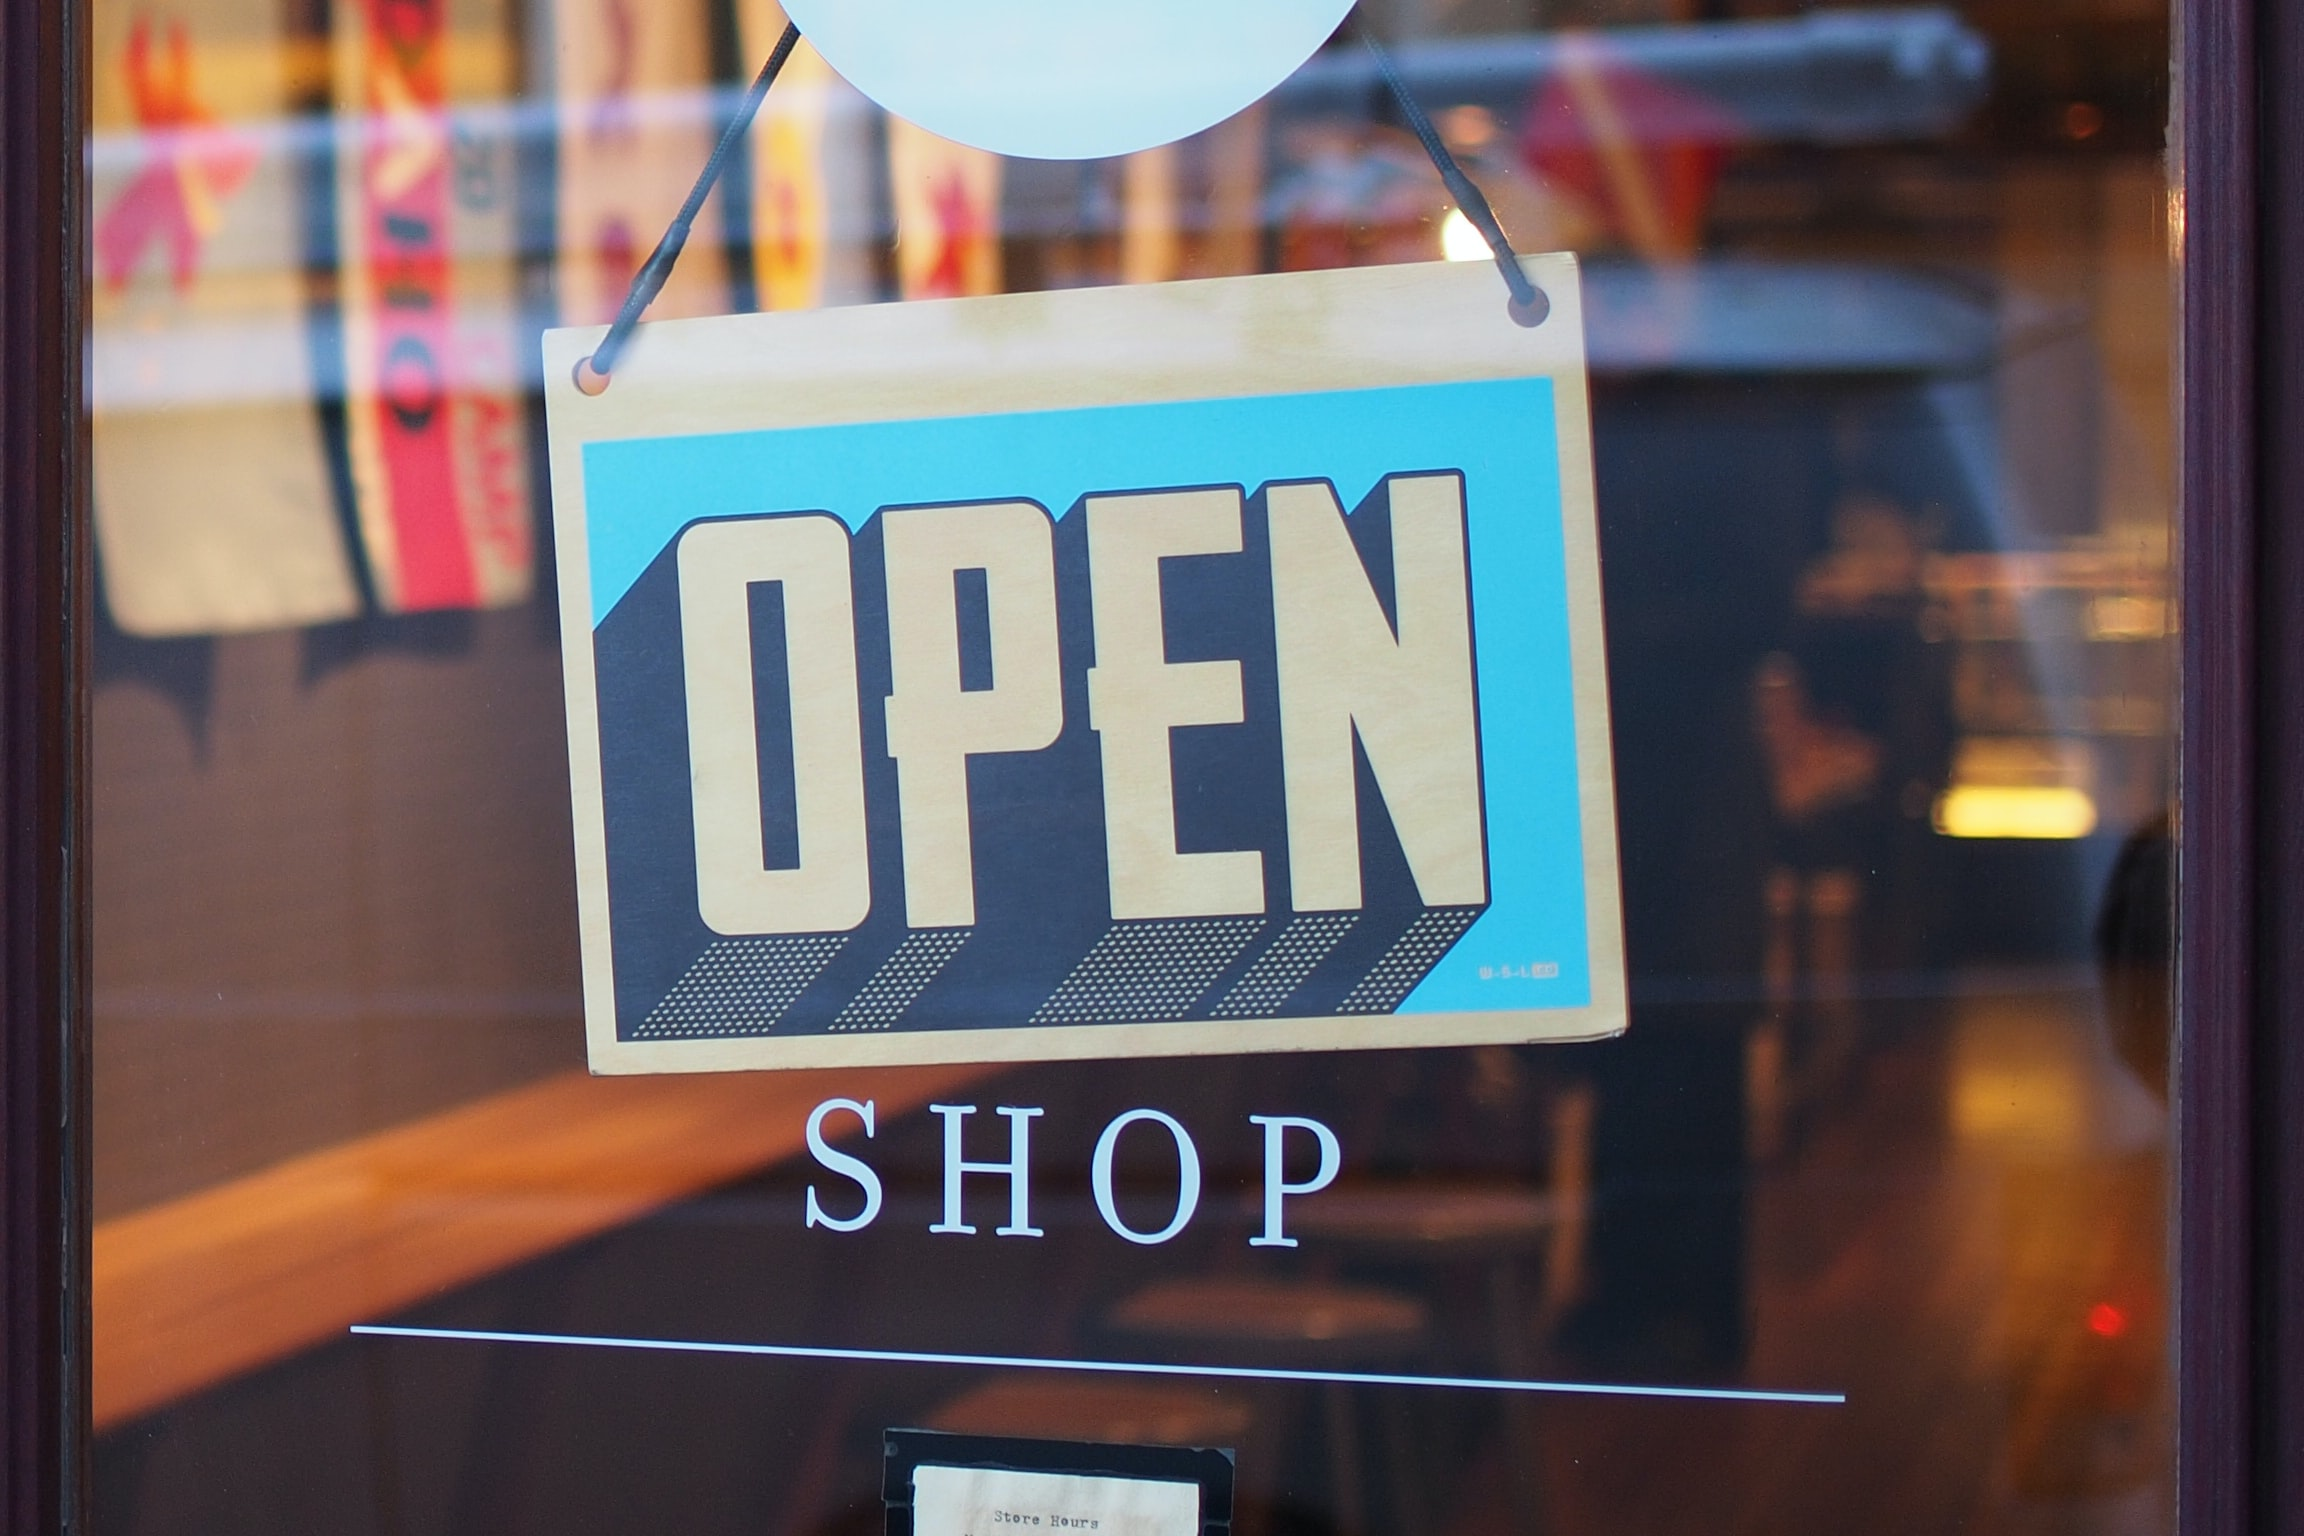 A storefront with a sign that says Open  and Shop